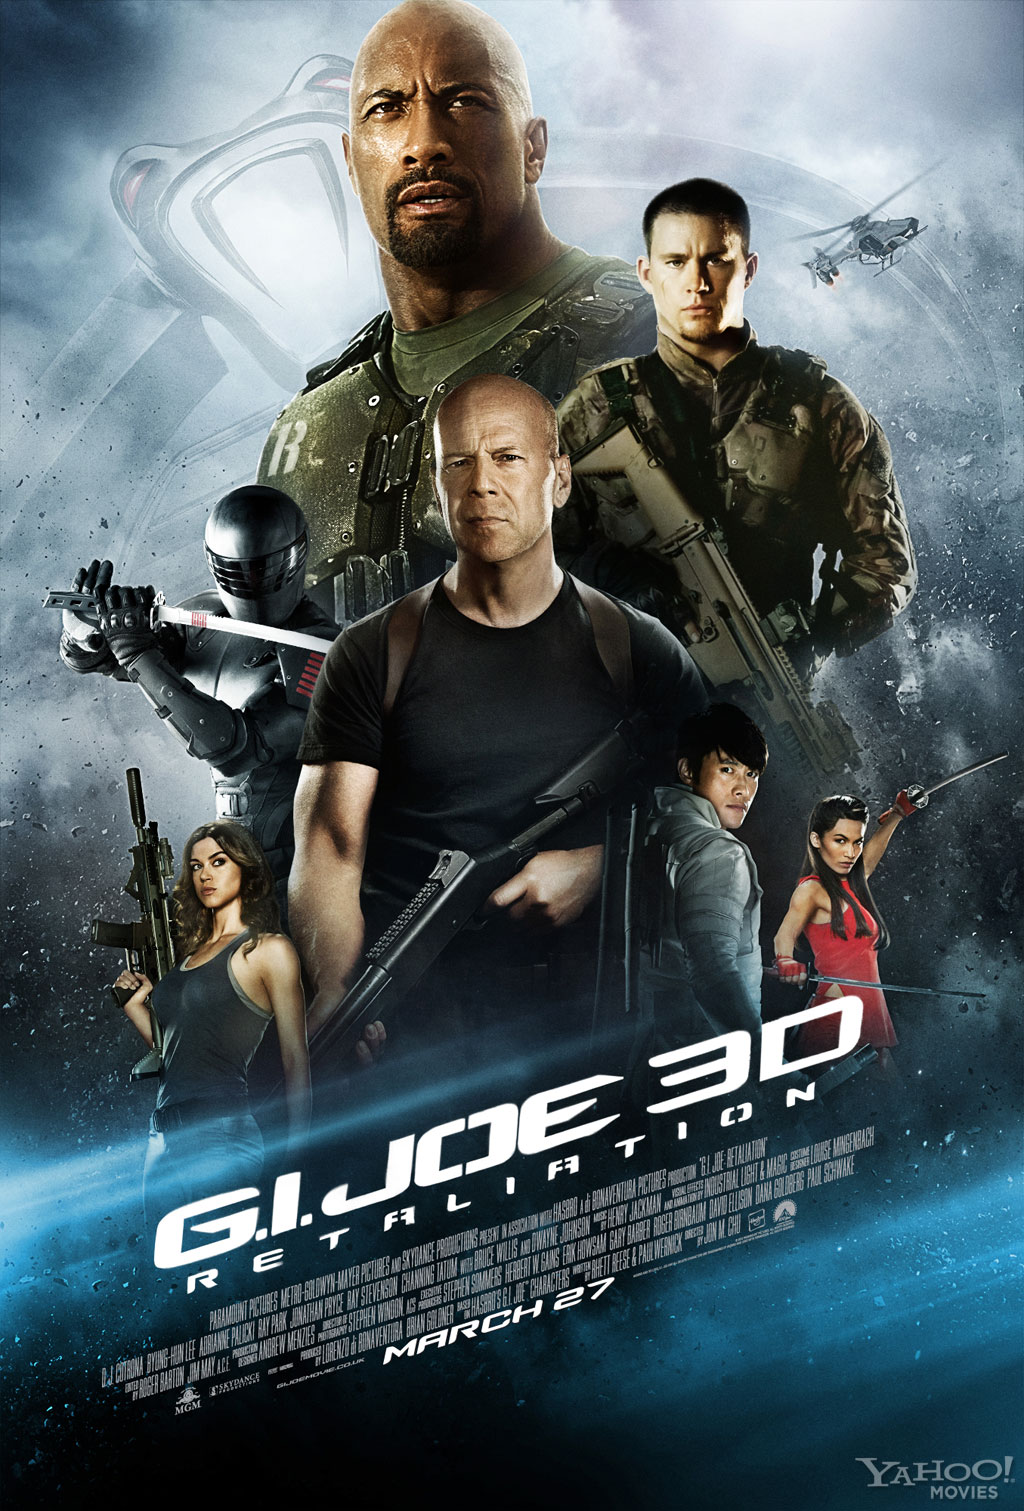 G.I. Joe Retaliation Movie